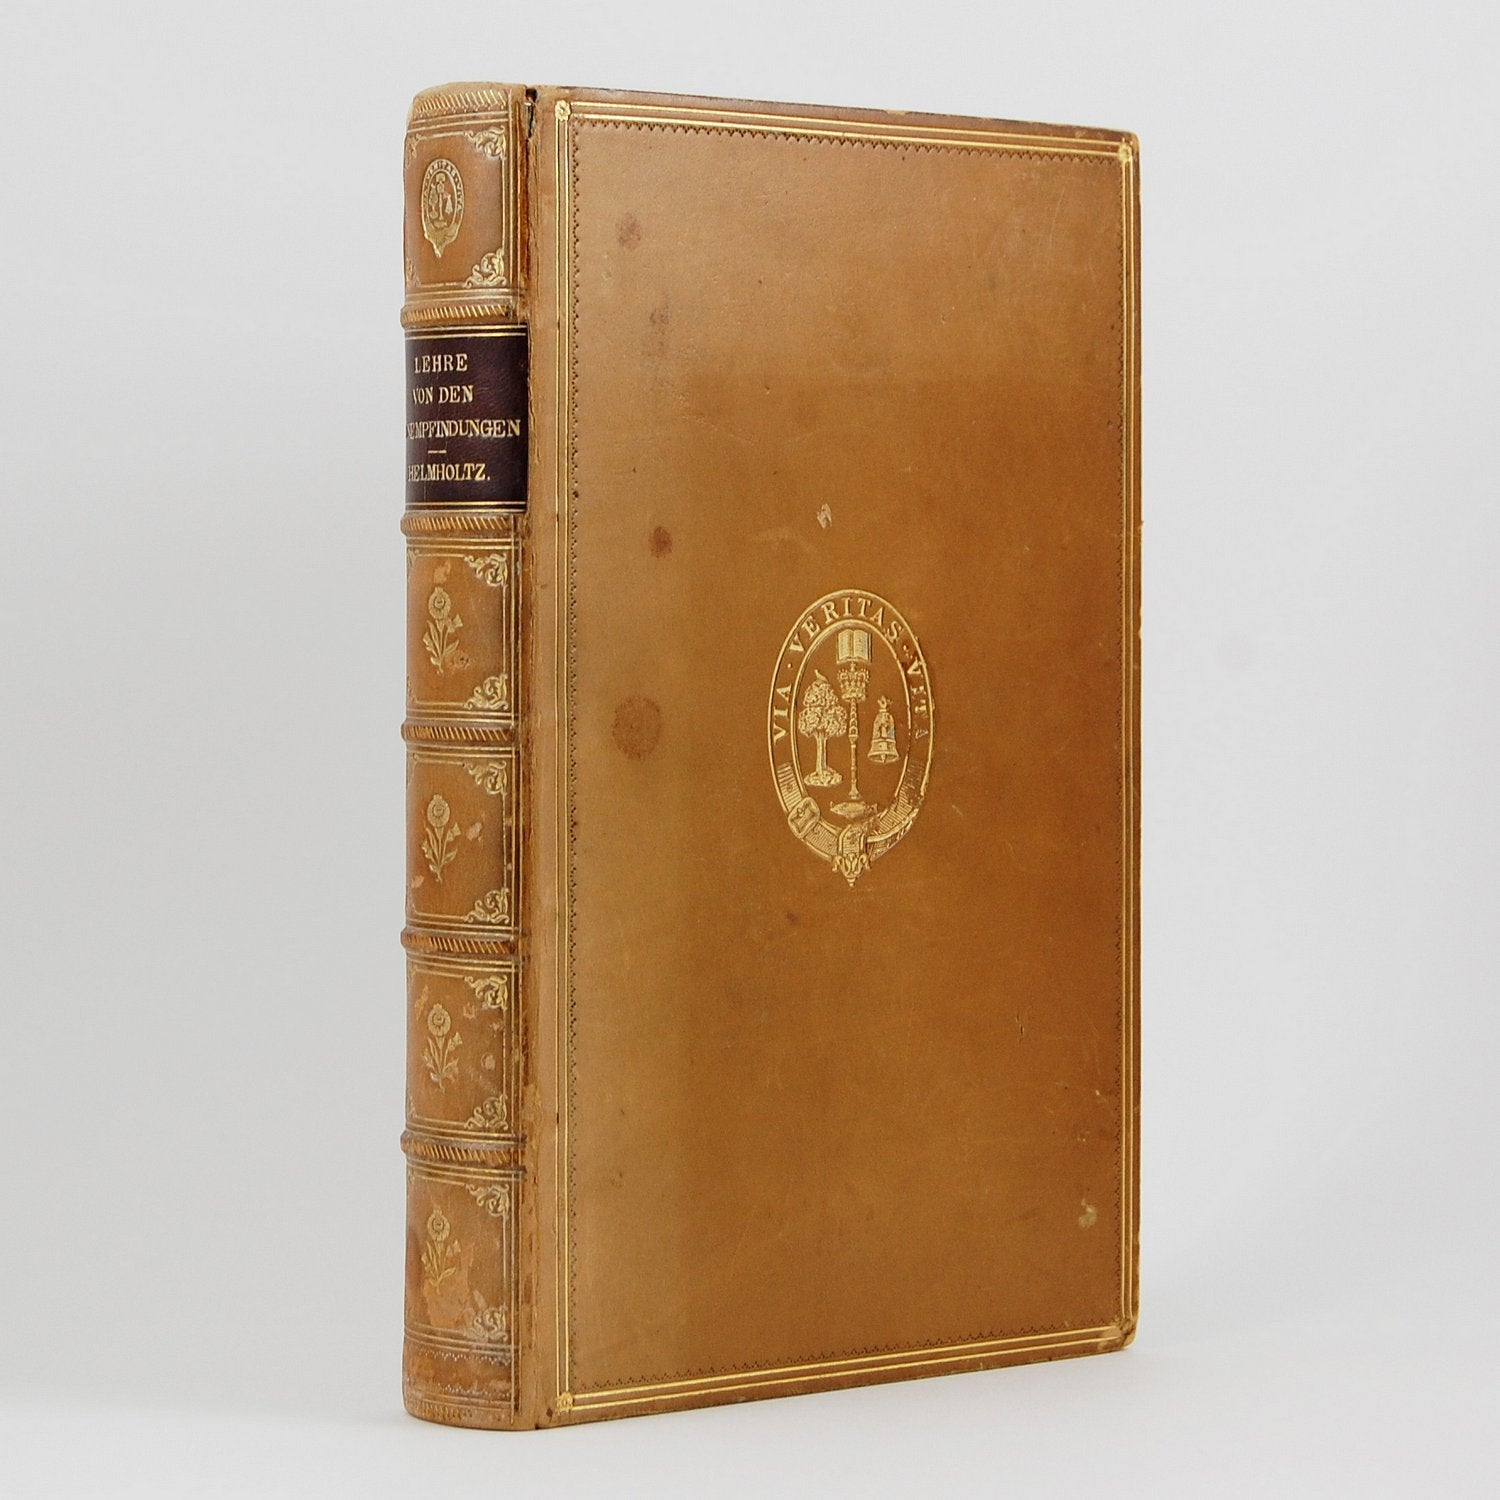 A School Prize Binding Inscribed by William Thomson, Baron Kelvin